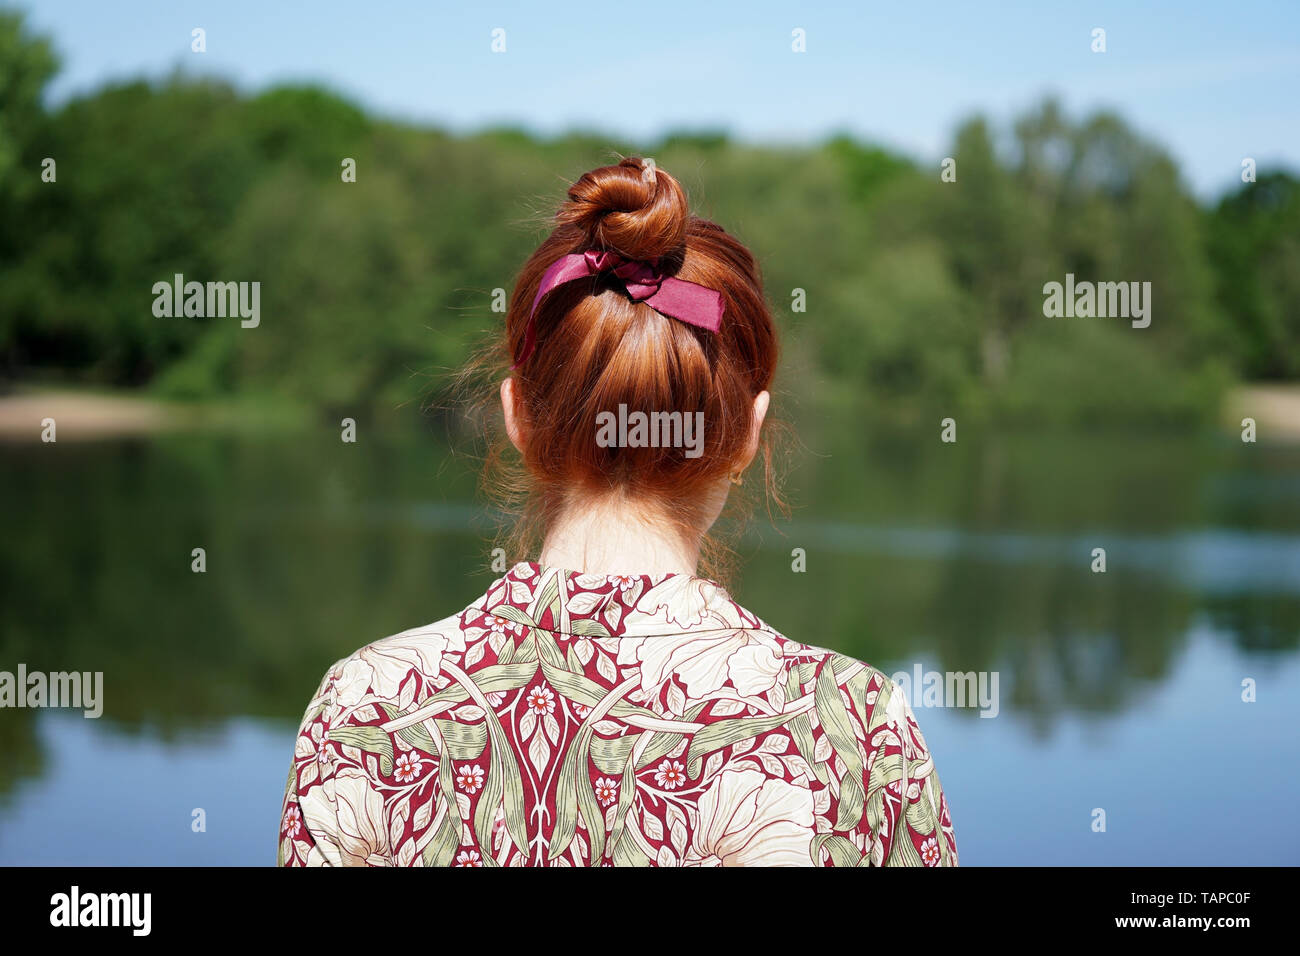 back view of unrecognizable young woman with floral dress and red hair bun looking at lake in solitude Stock Photo